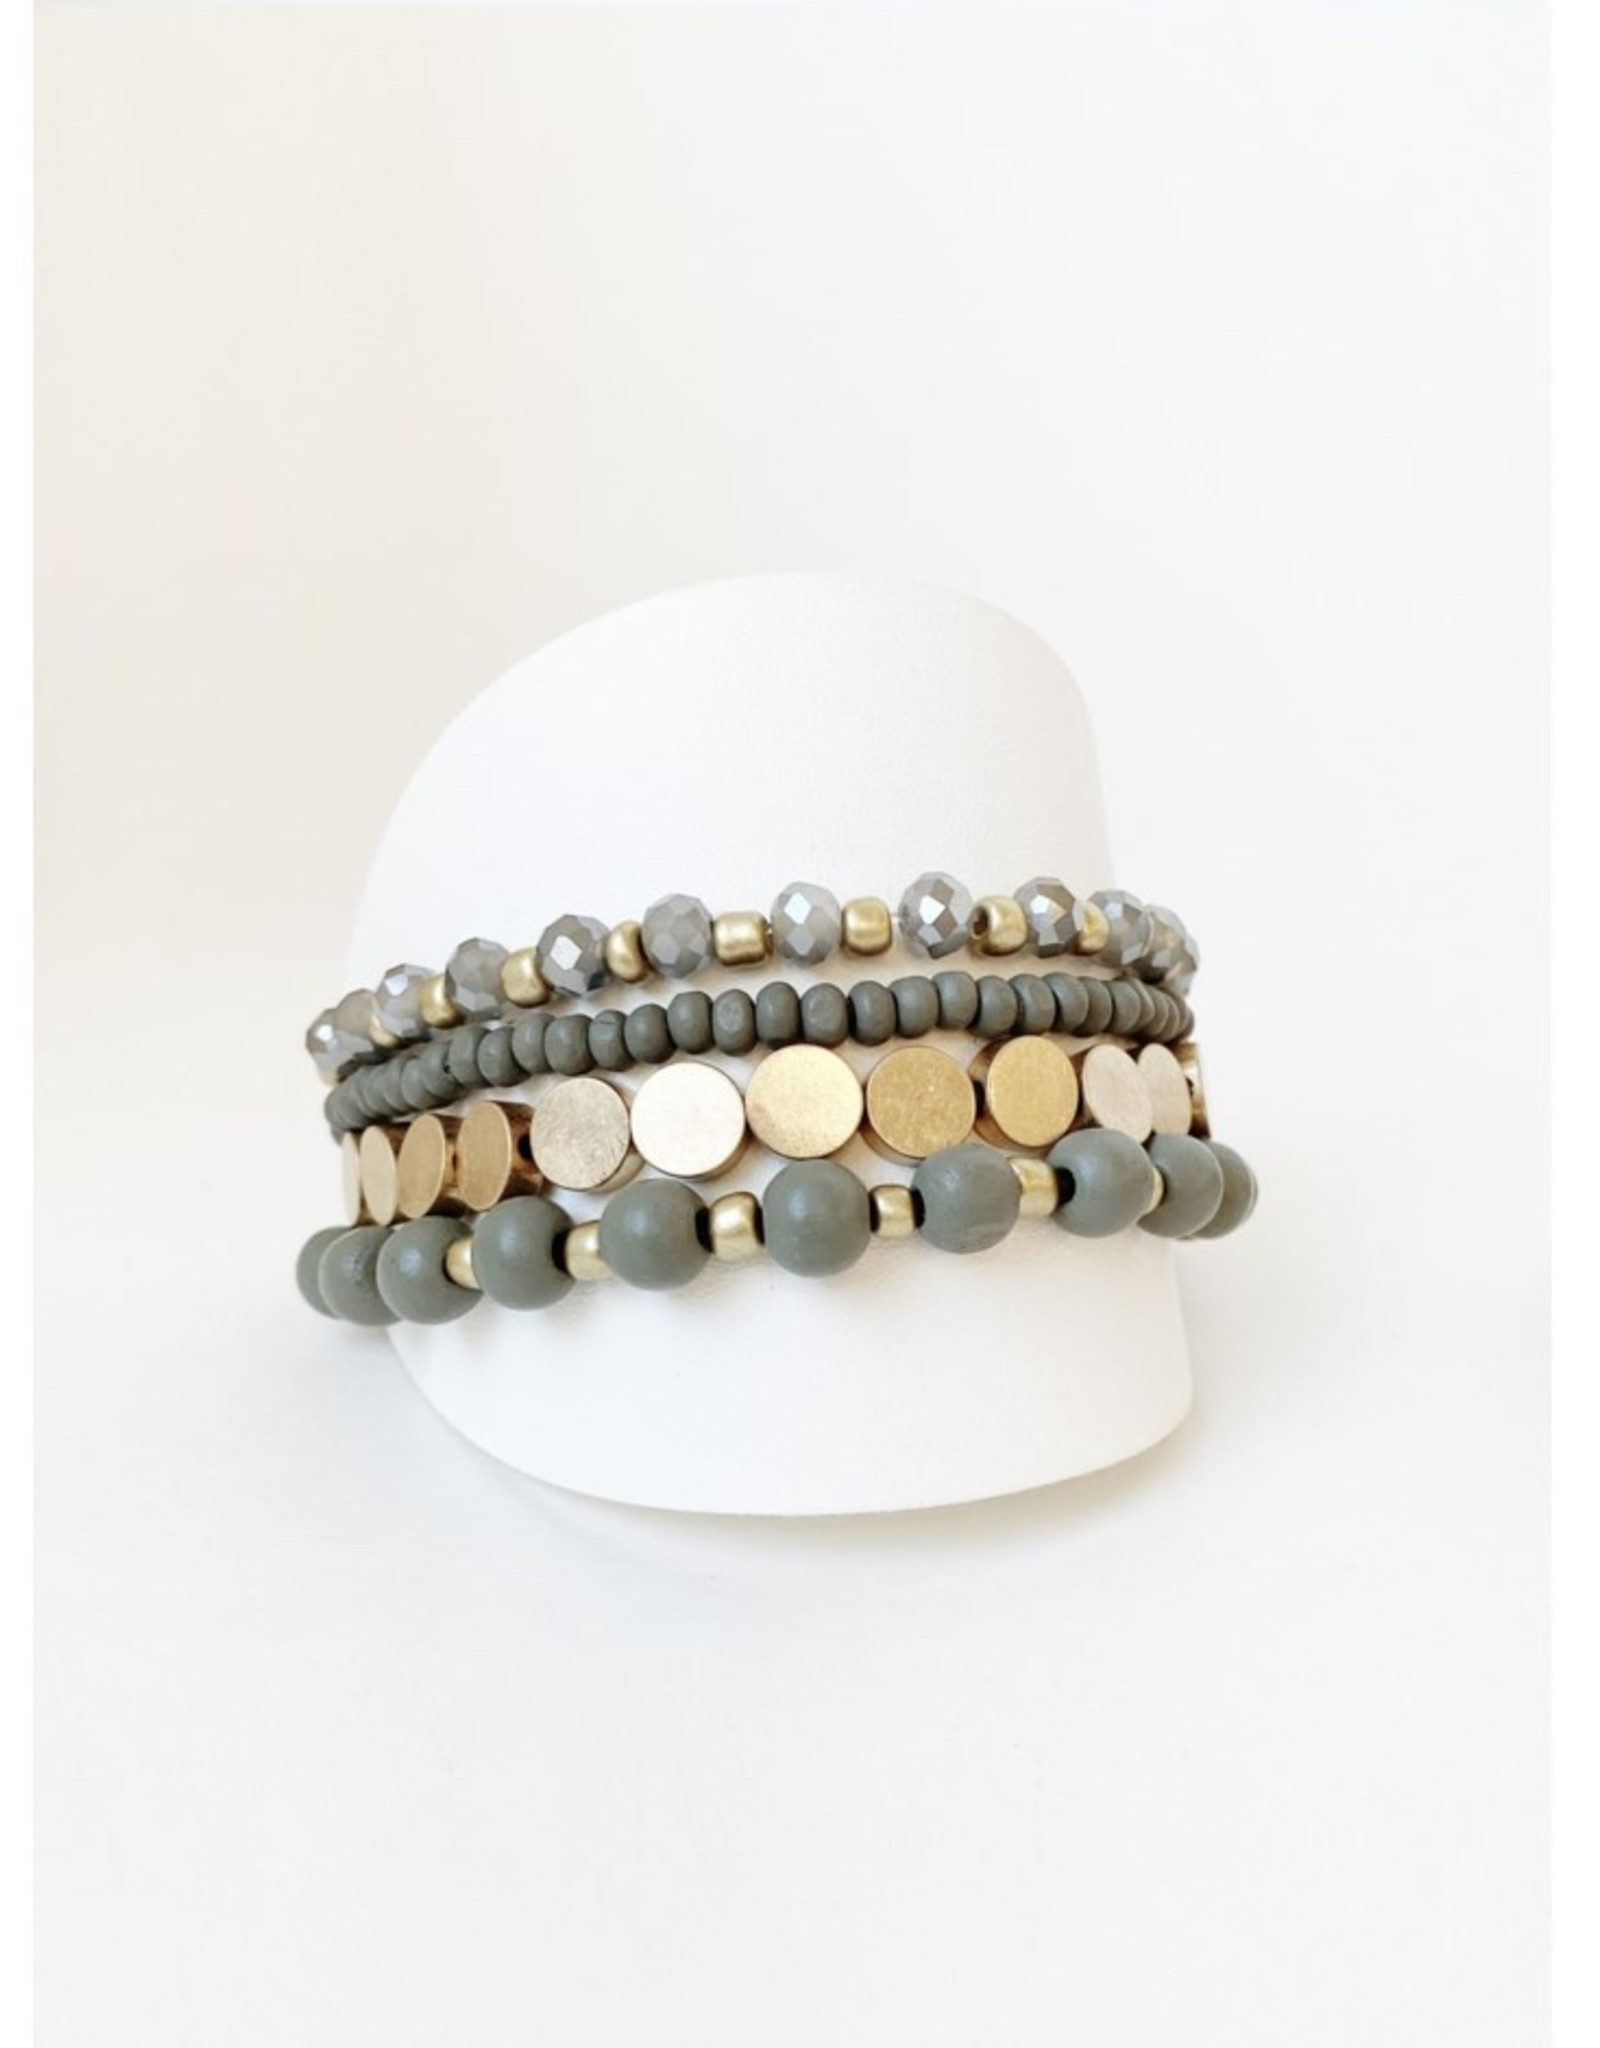 Set of 4 Bracelets with Wood and Metal Beads-grey/gold